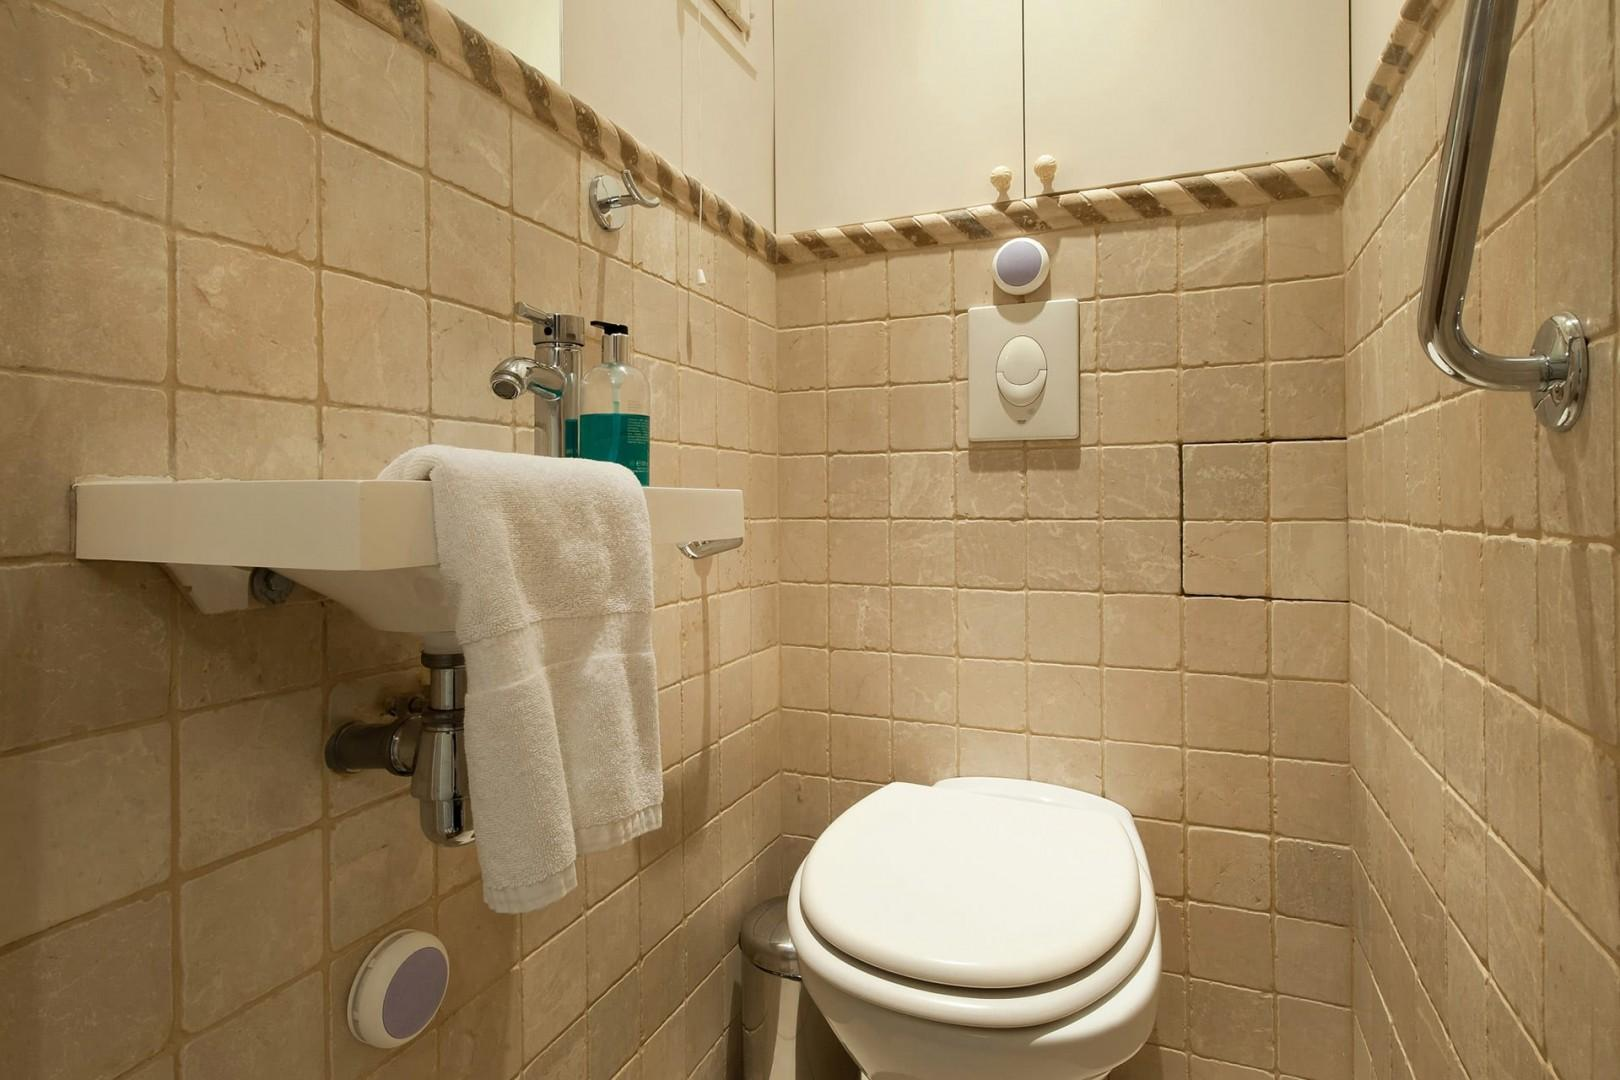 There is a practical separate half bath.